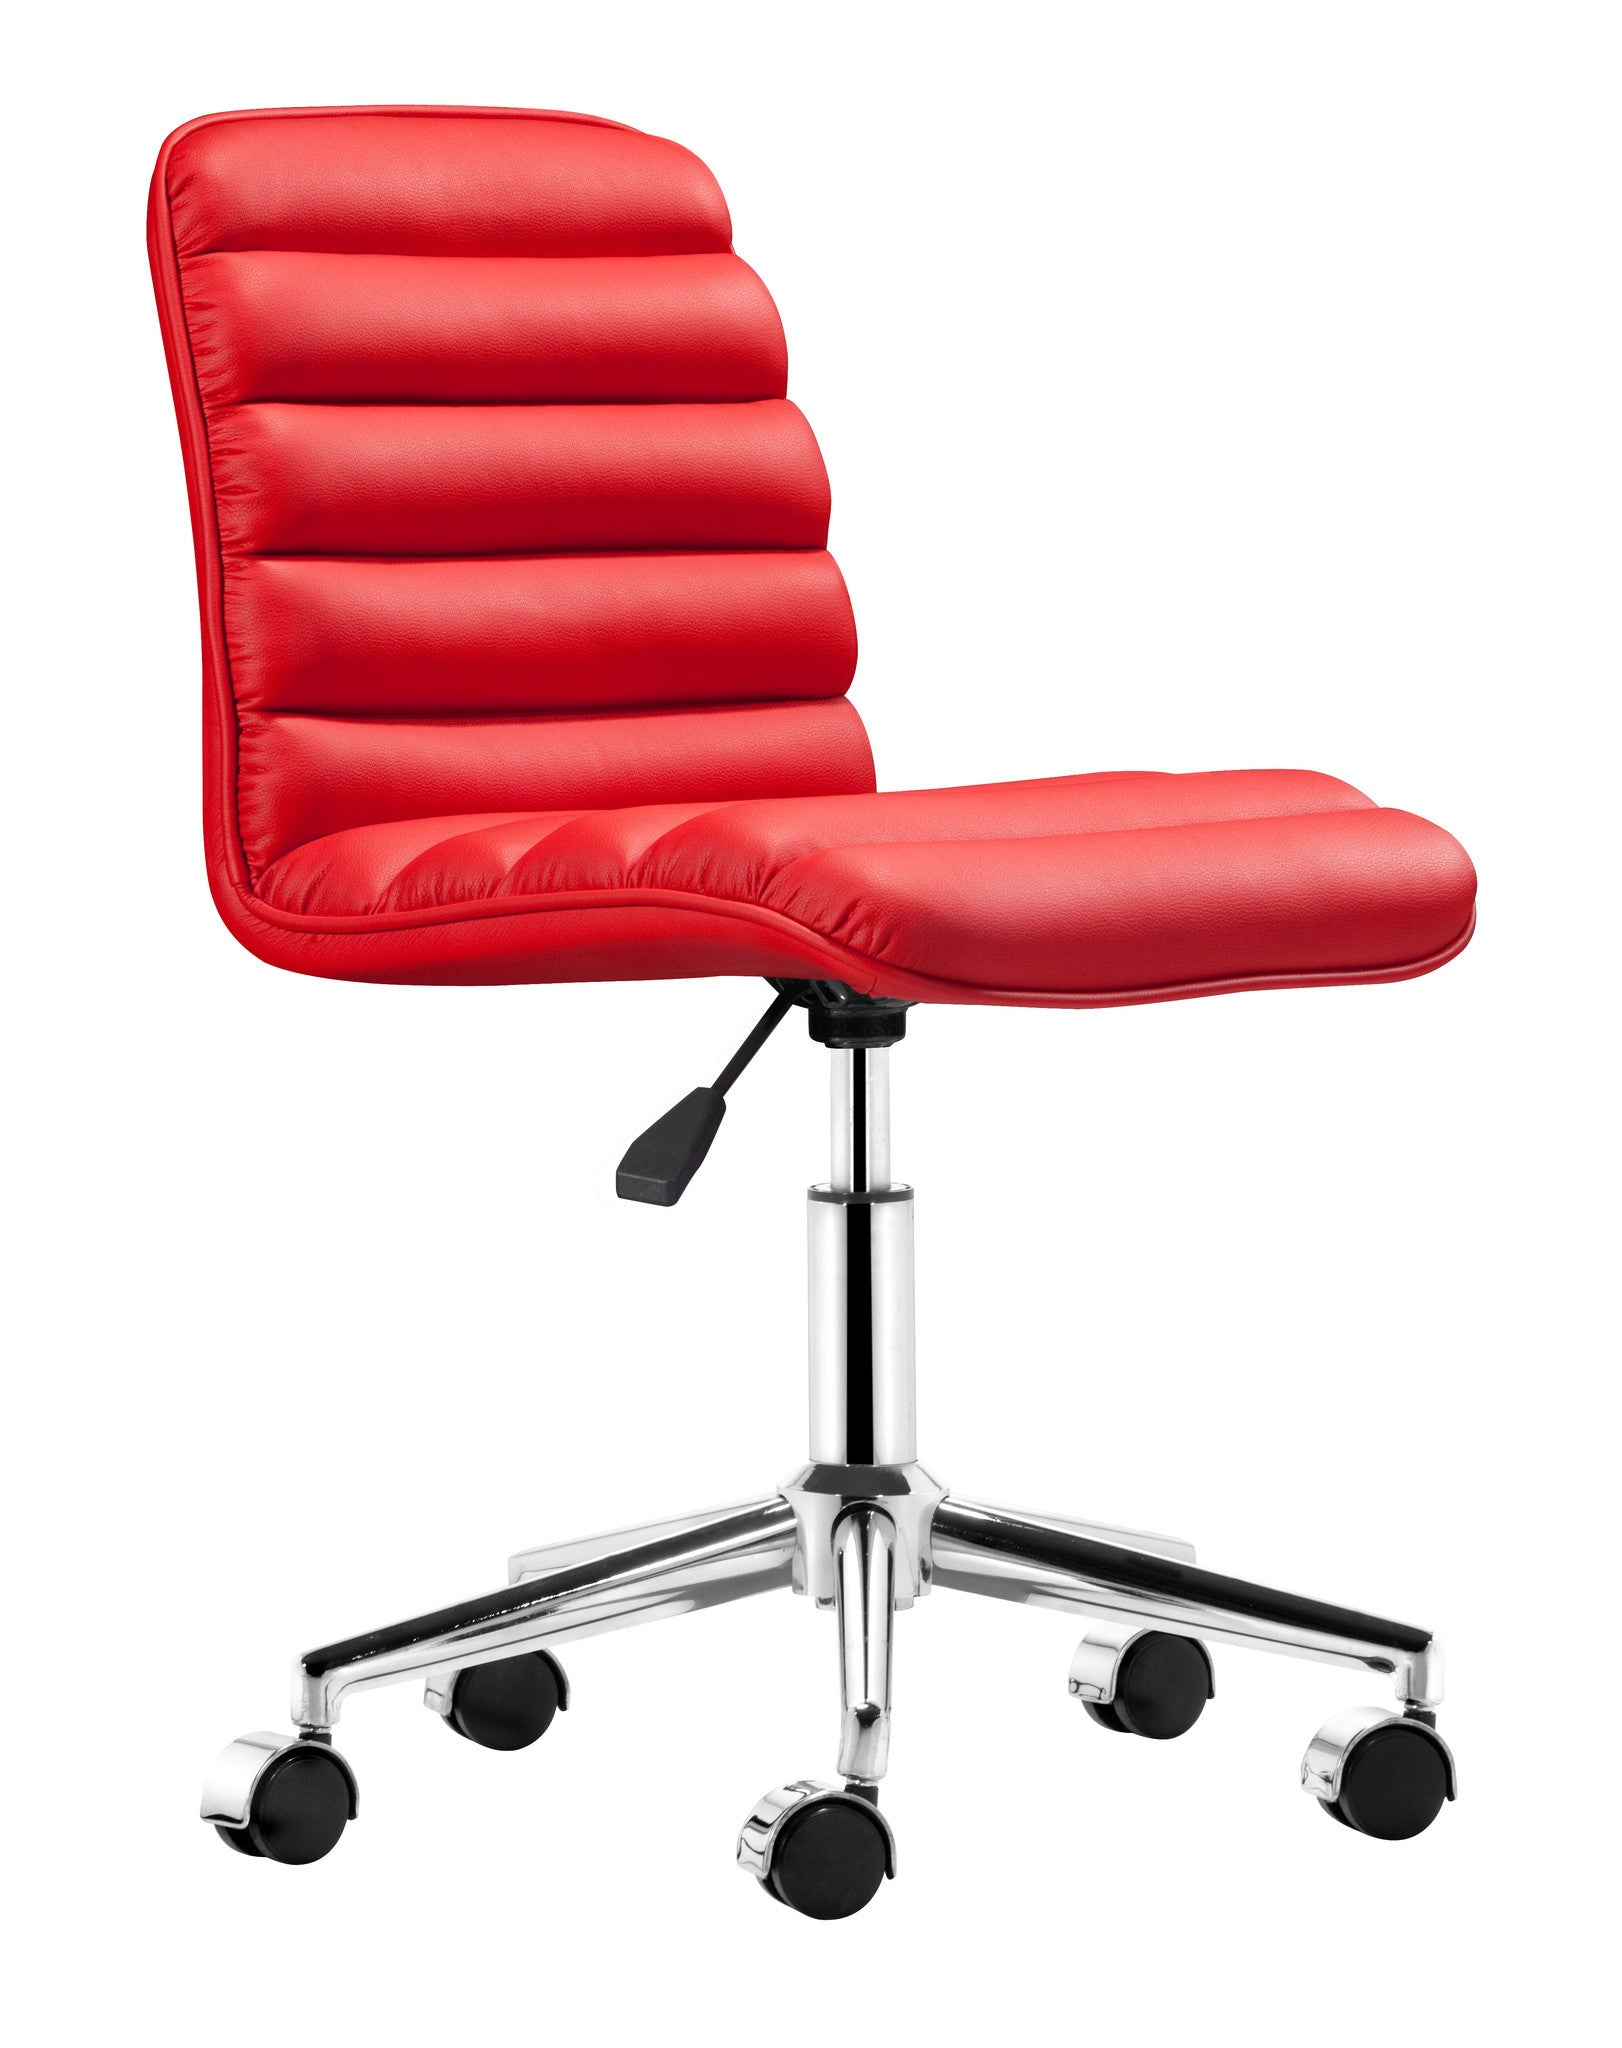 itm gaming rocker red car seats high back chair computer racing office executive